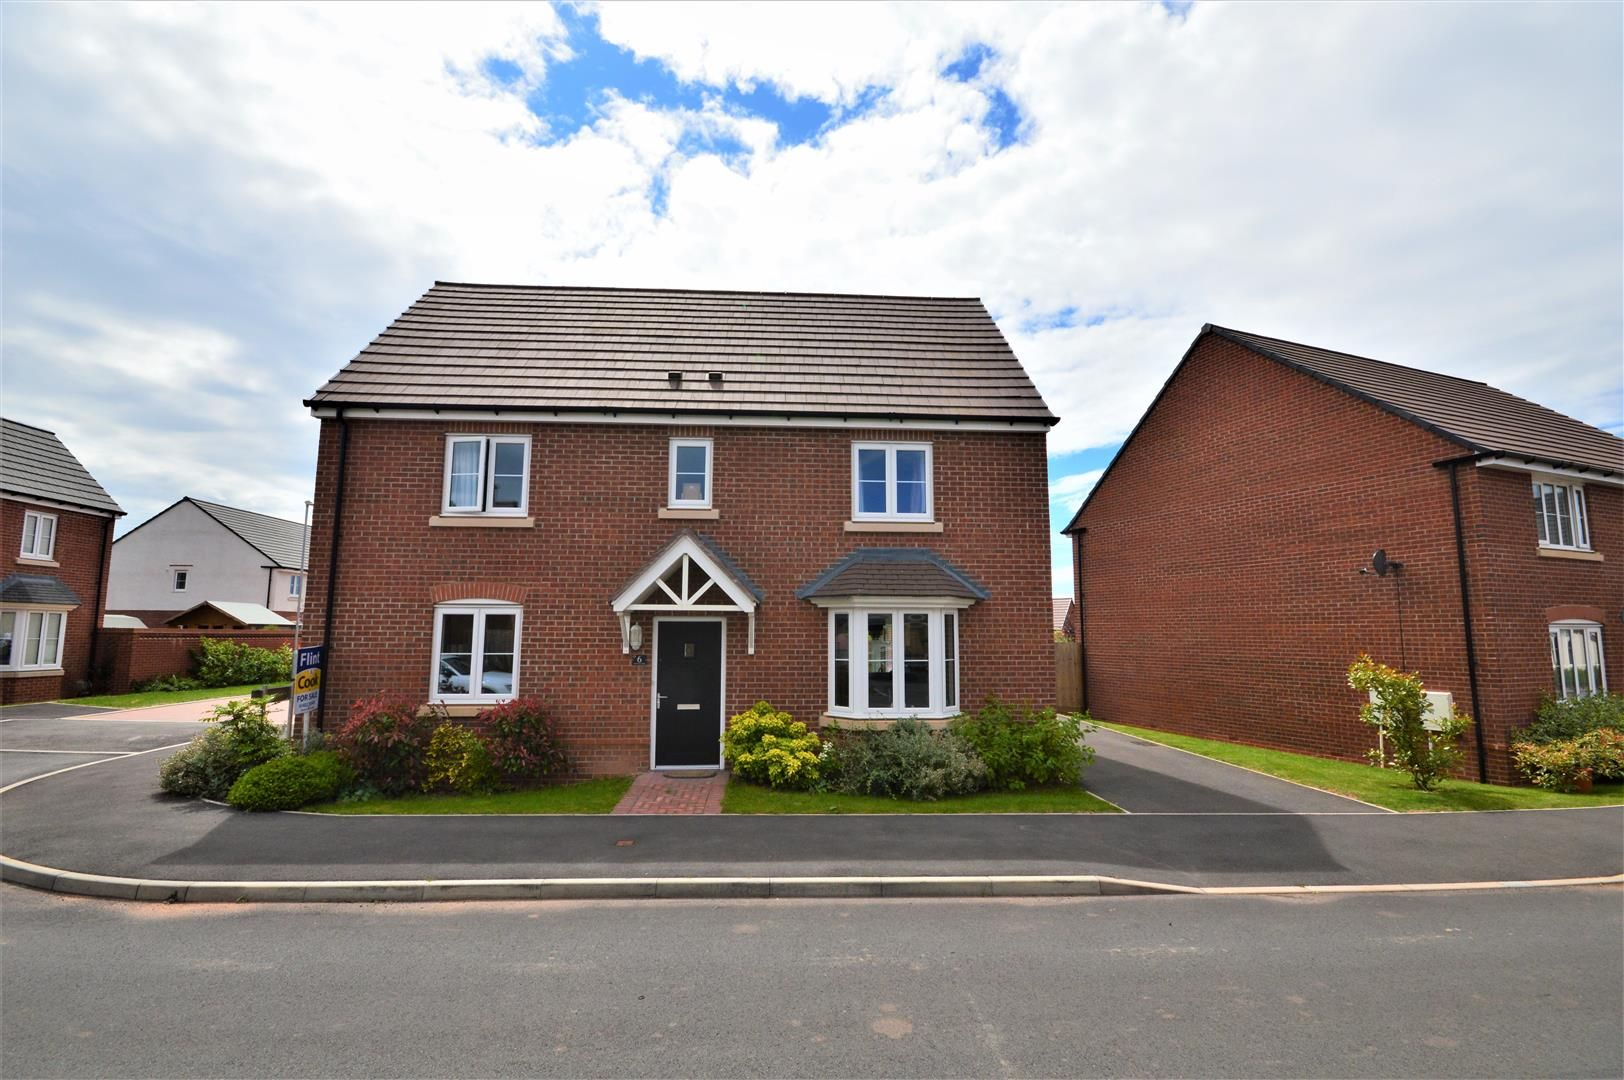 4 bed detached for sale in Whitestone 18